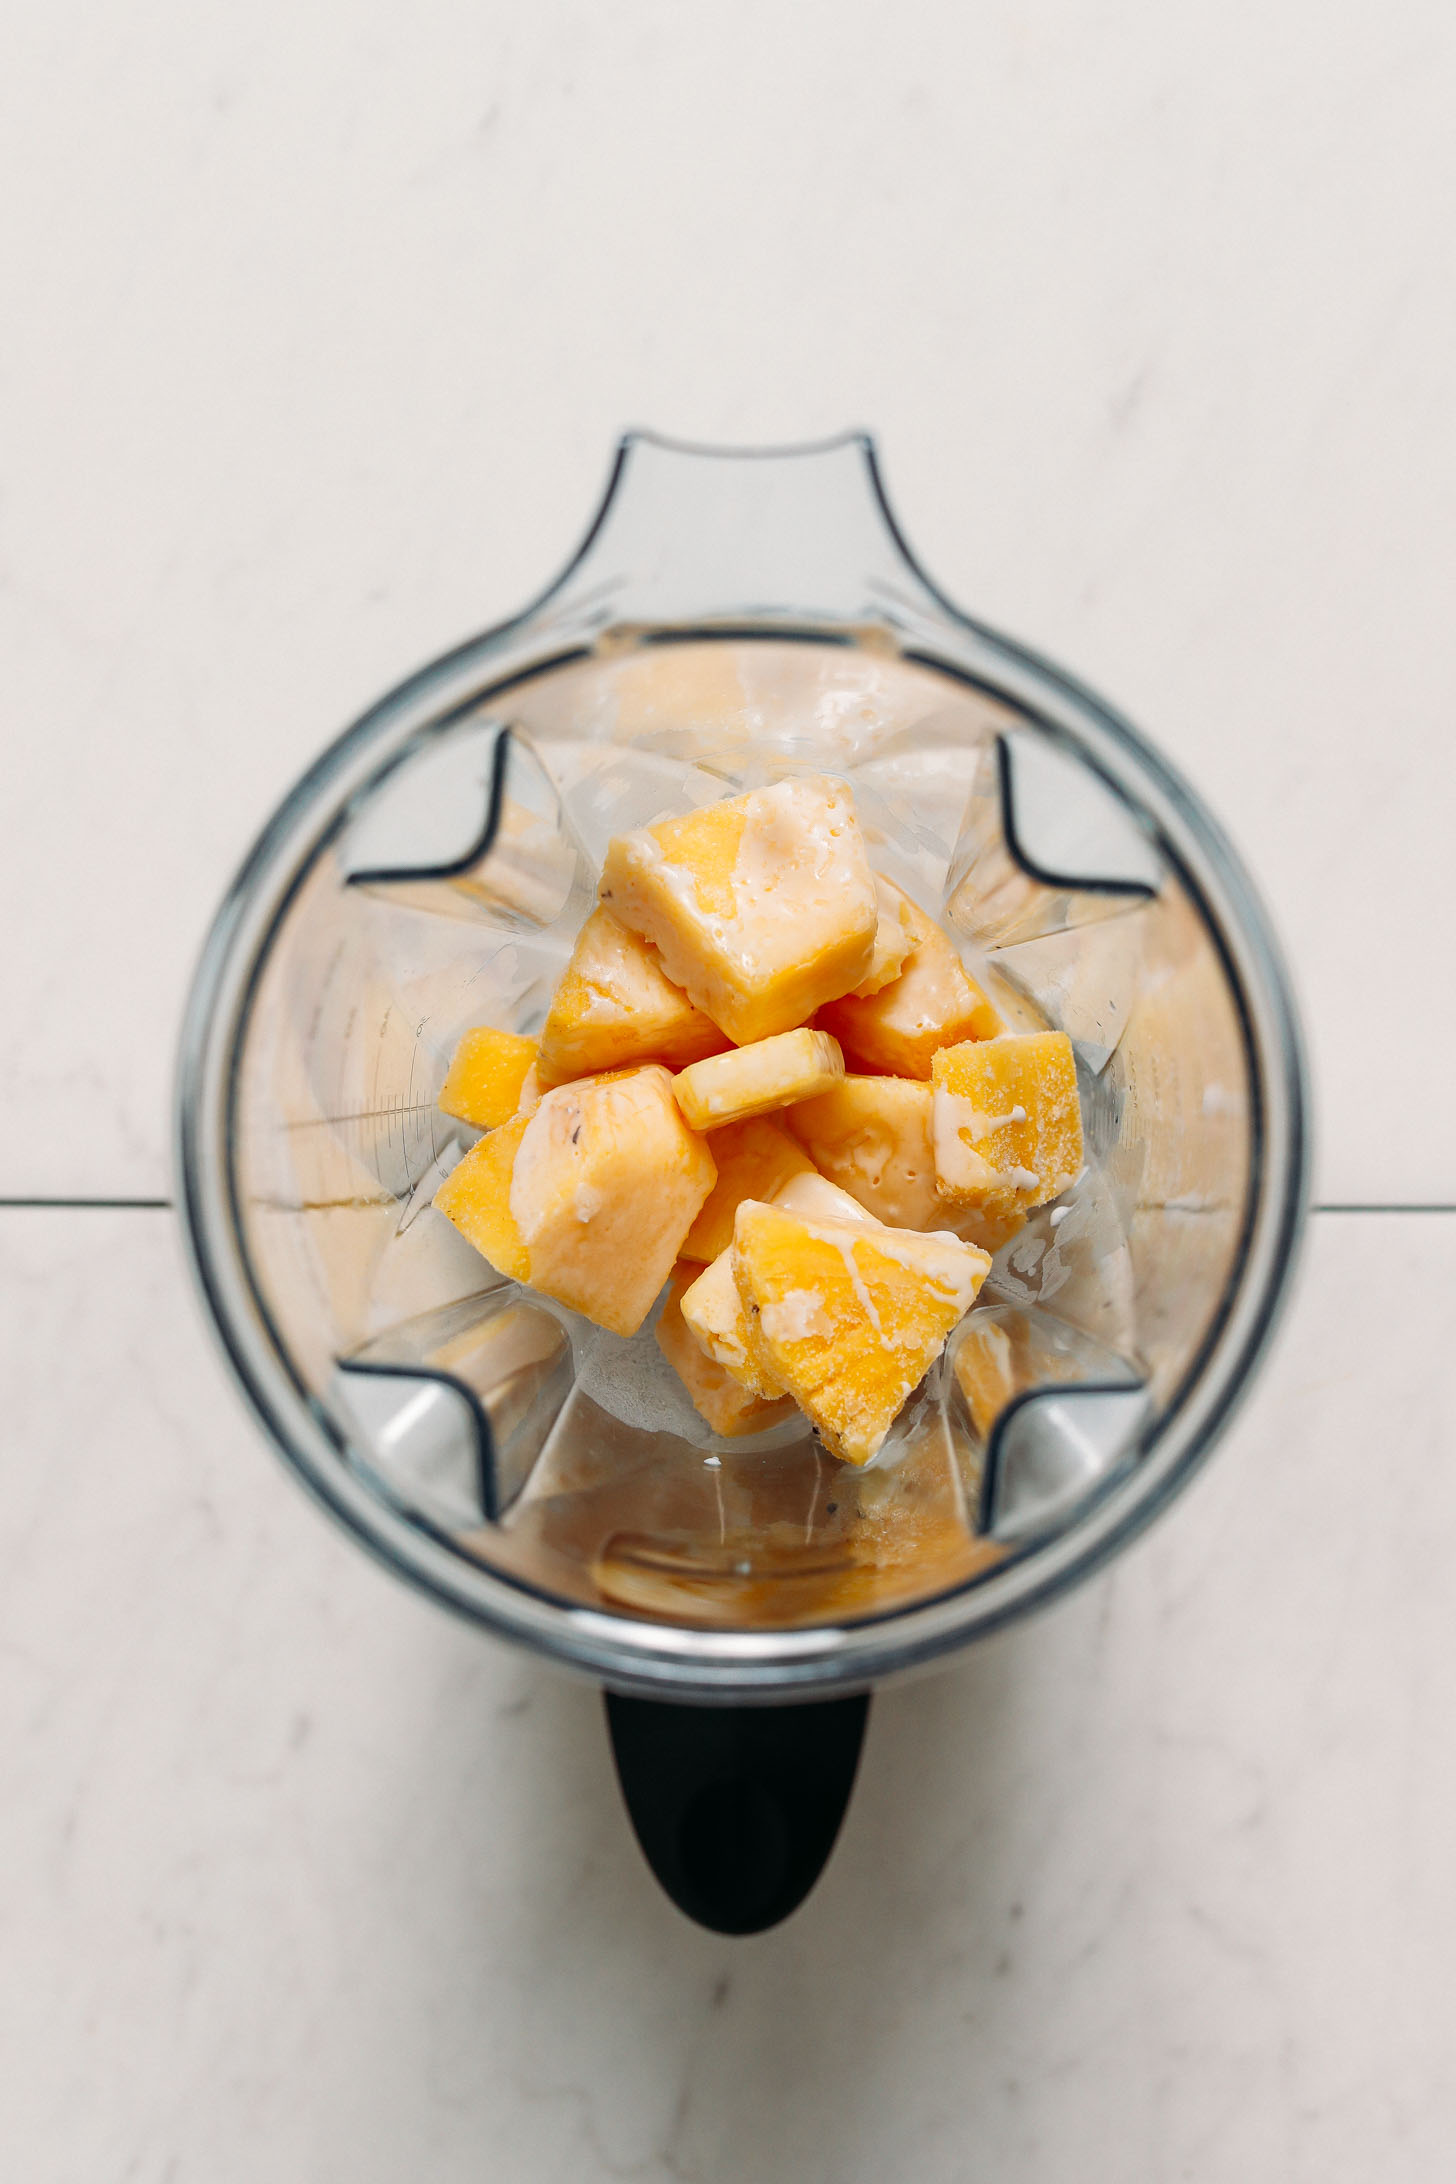 Frozen pineapple chunks and coconut milk for making a piña colada